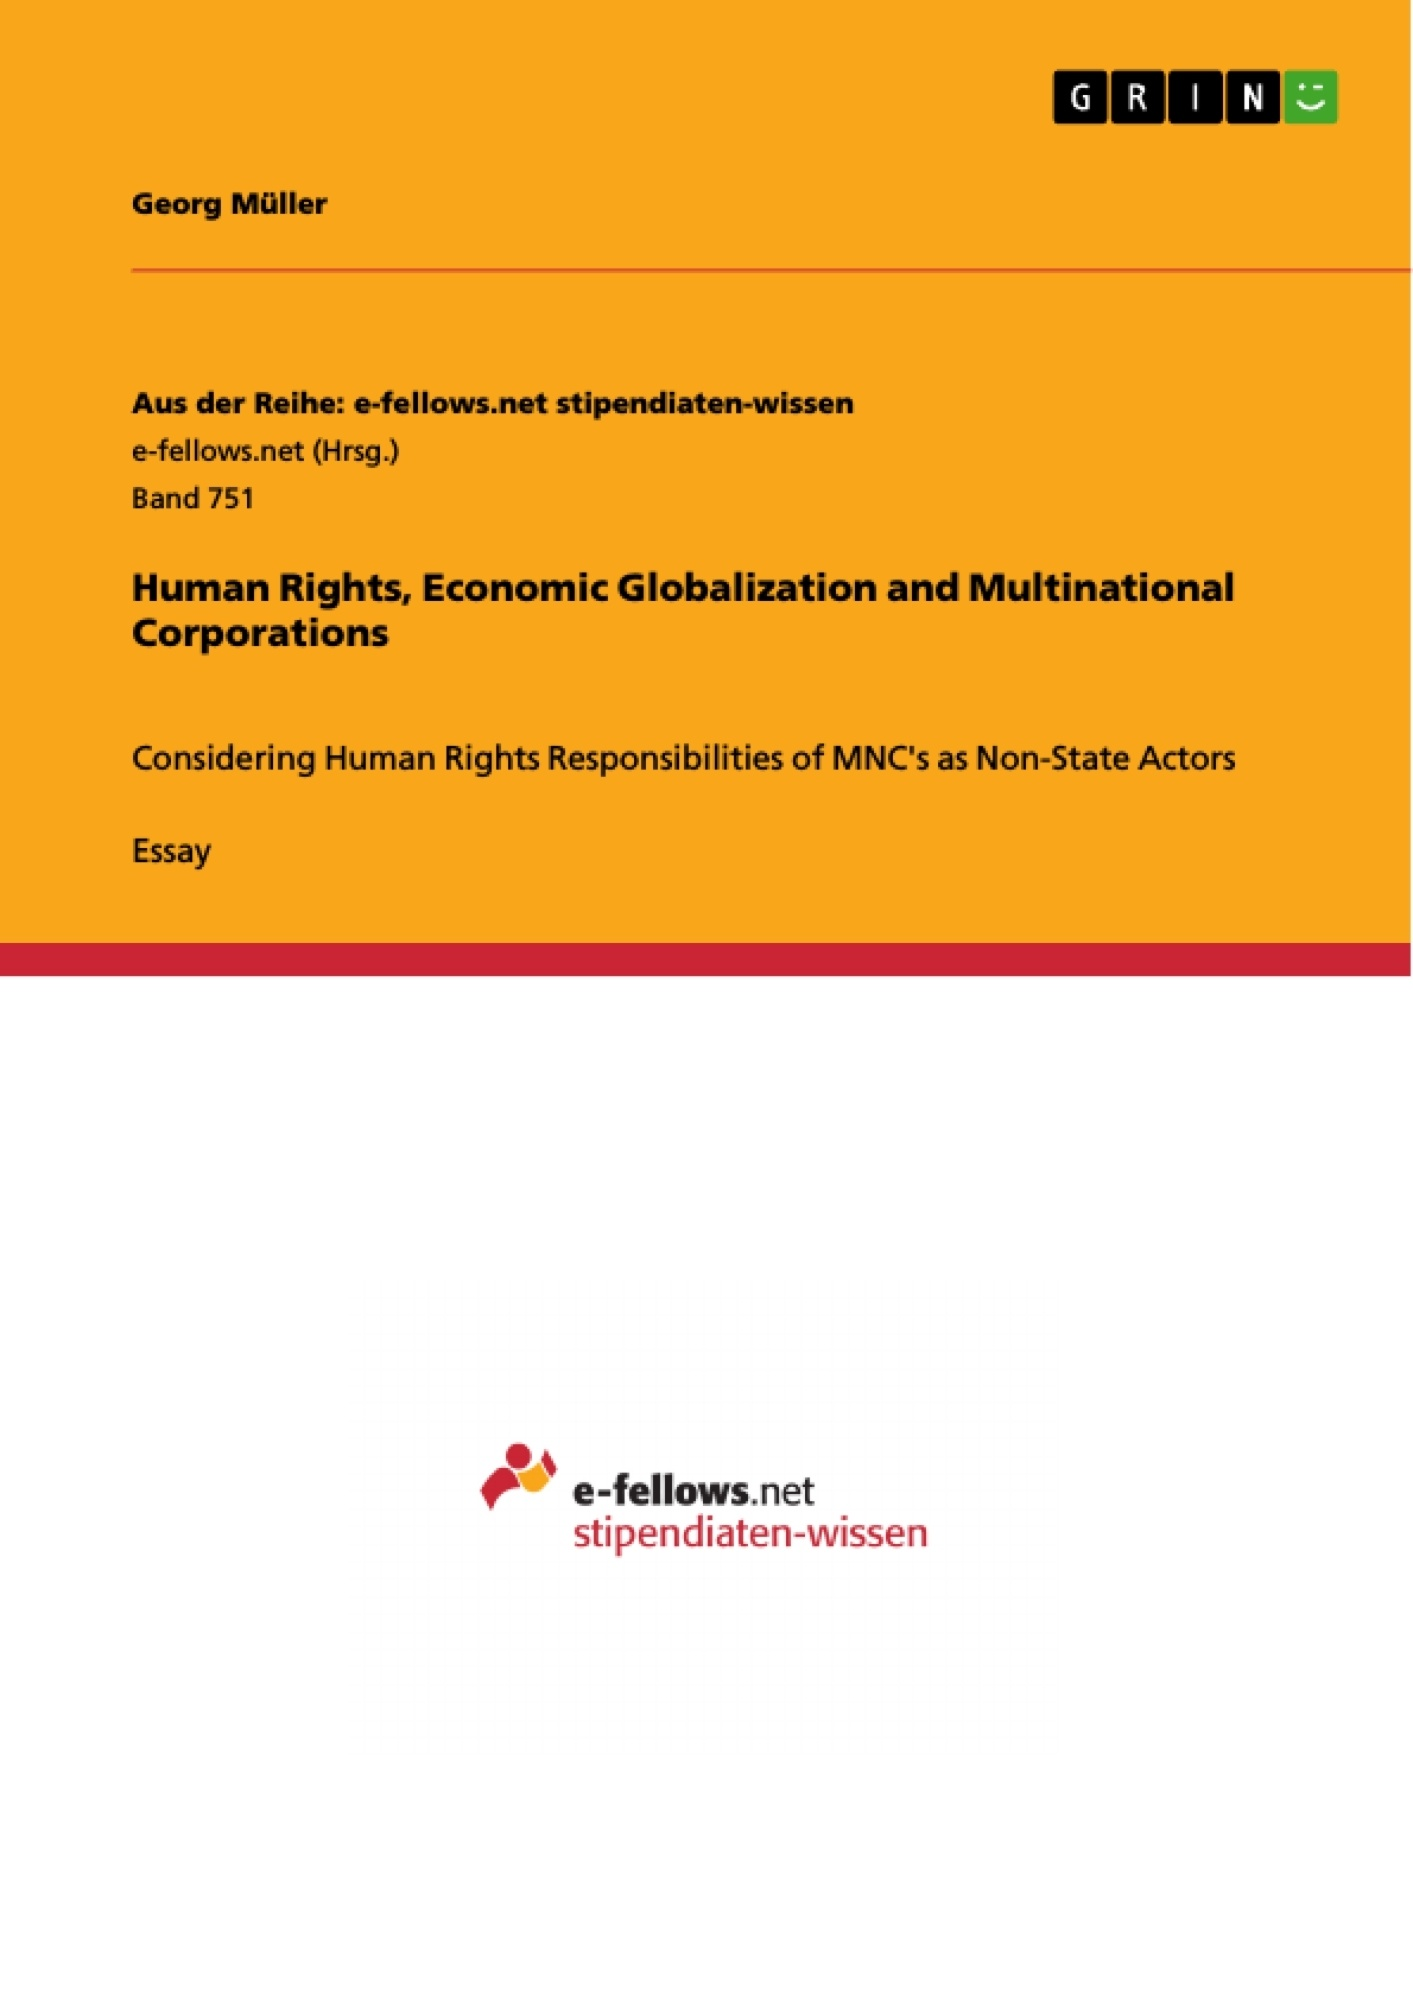 Title: Human Rights, Economic Globalization and Multinational Corporations